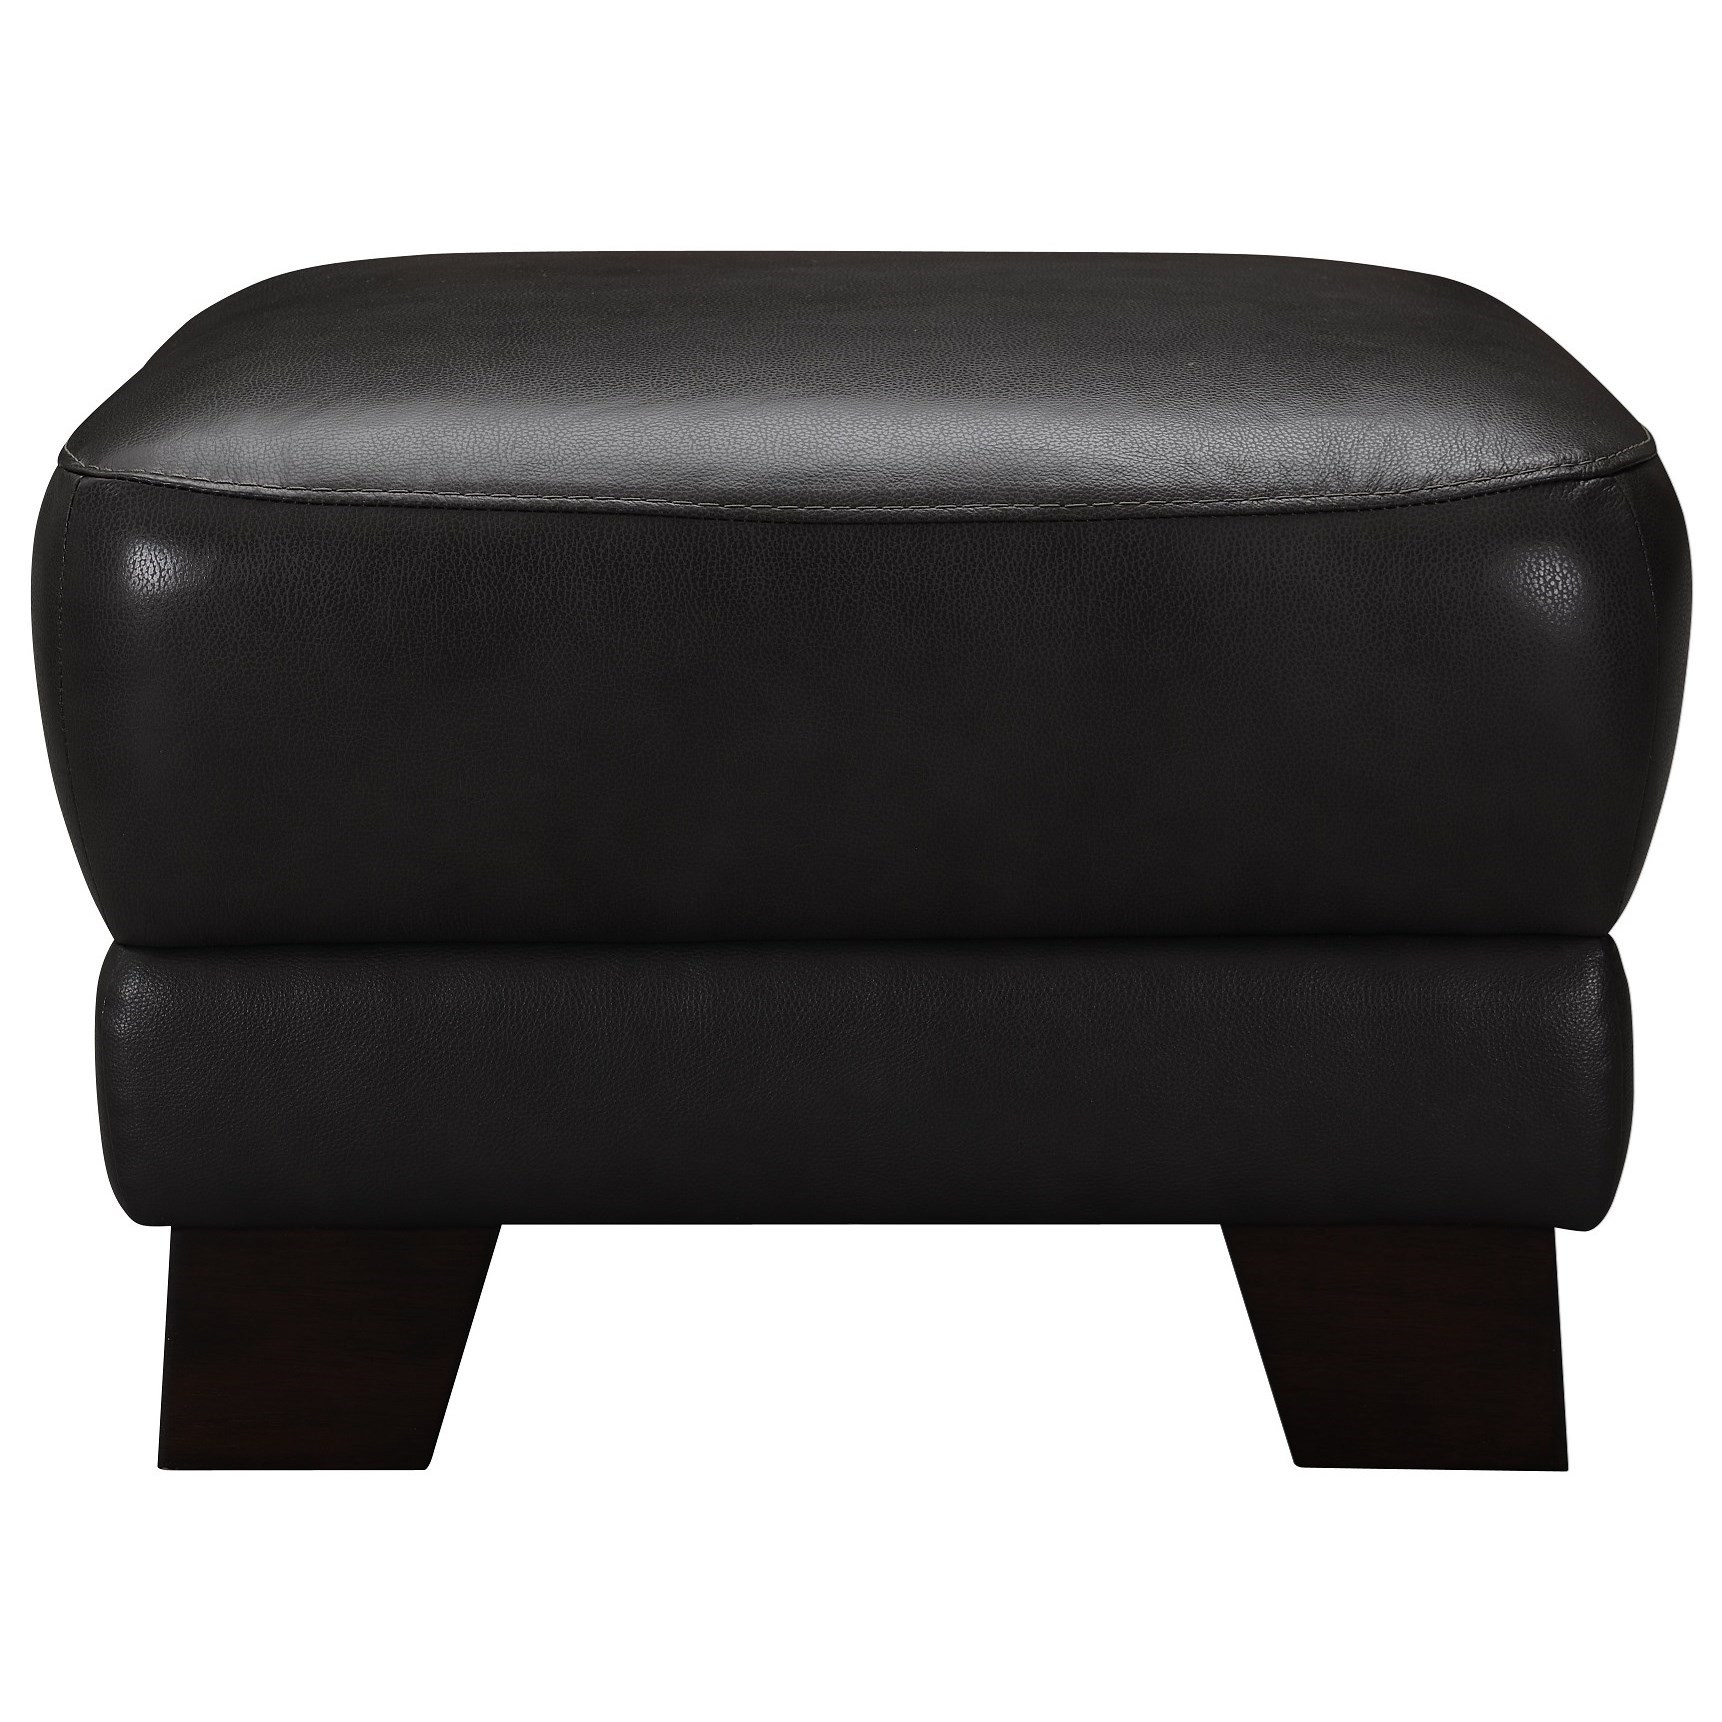 31978 Ottoman by Violino at Furniture Superstore - Rochester, MN